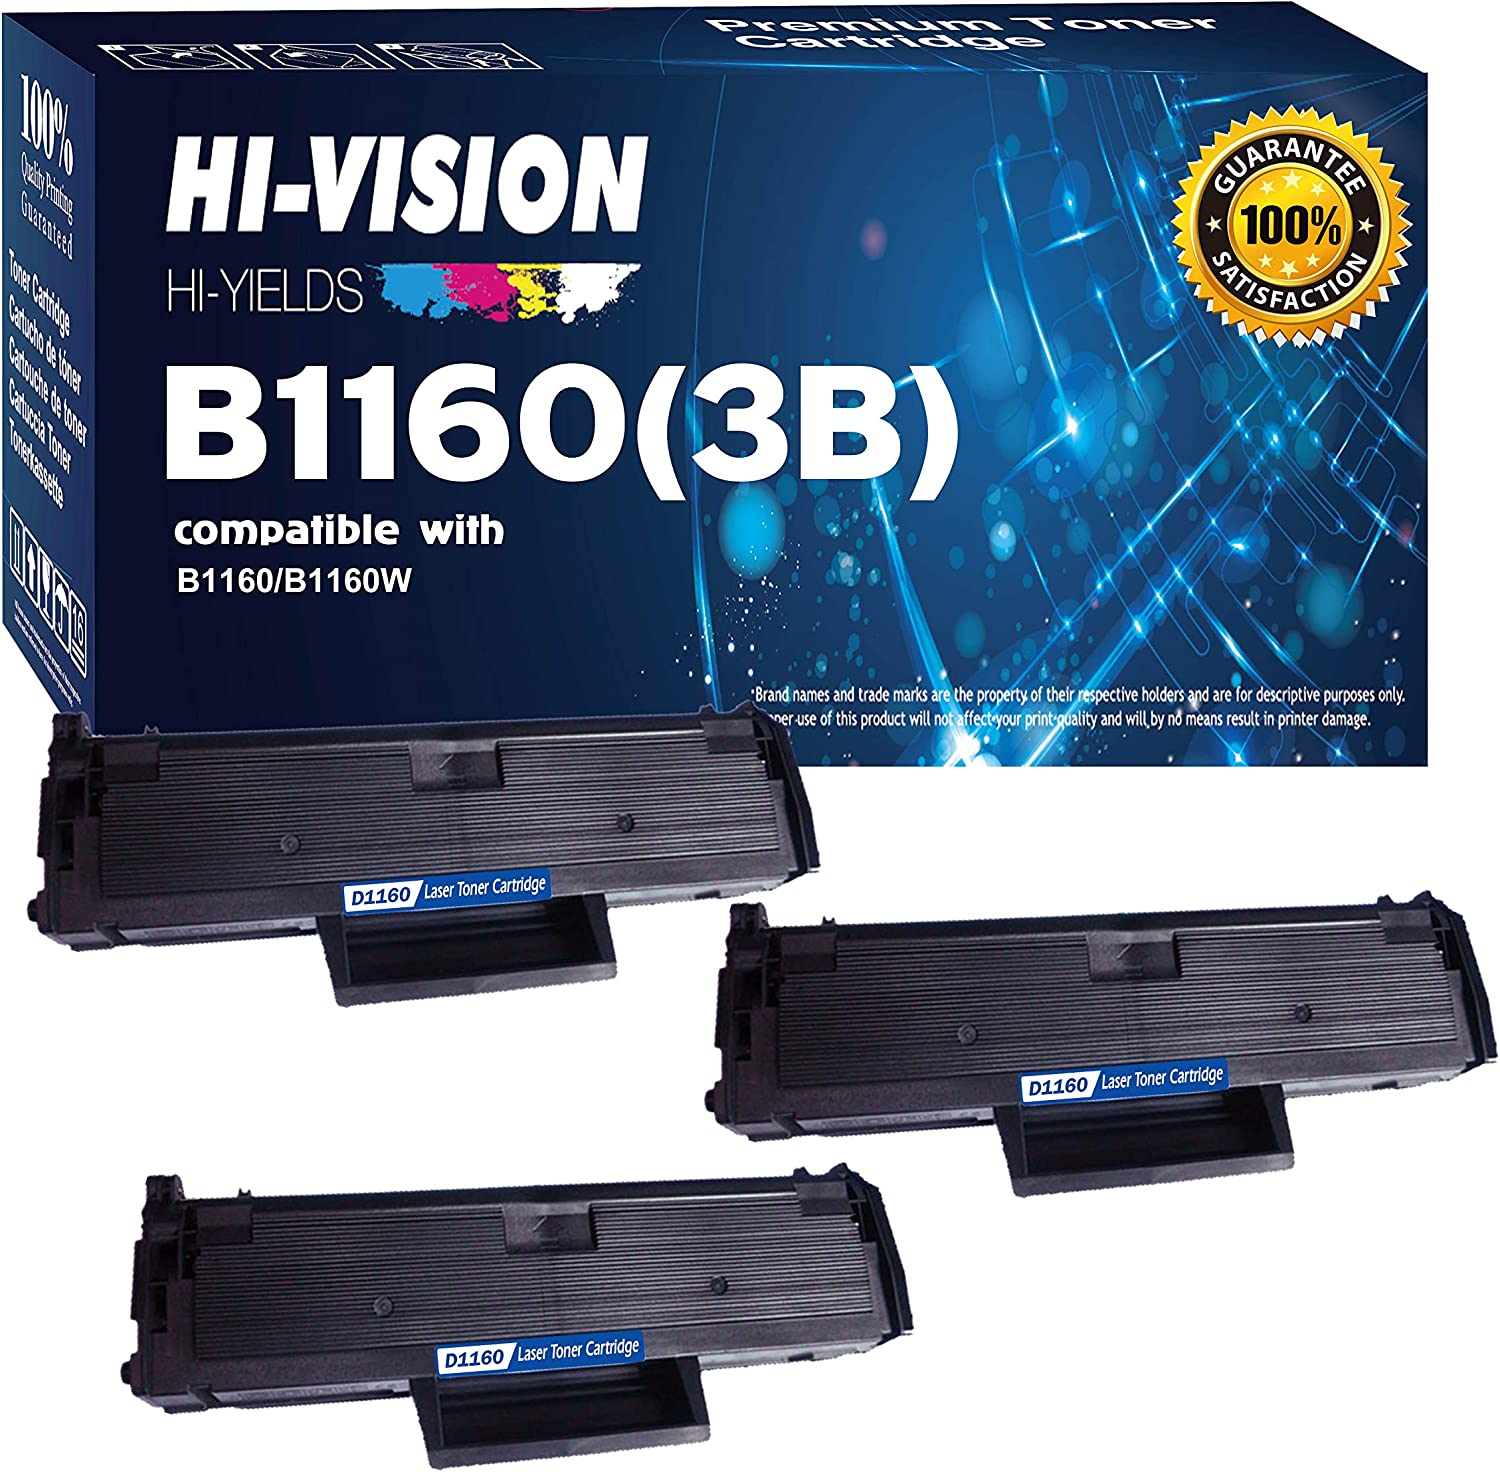 HI-VISION HI-YIELDS Compatible B1160 1160 331-7335 (YK1PM, HF442) 3 Pack Black Toner Cartridge Replacement for Dell B1160,B1160W,B1163W,B1165nfw